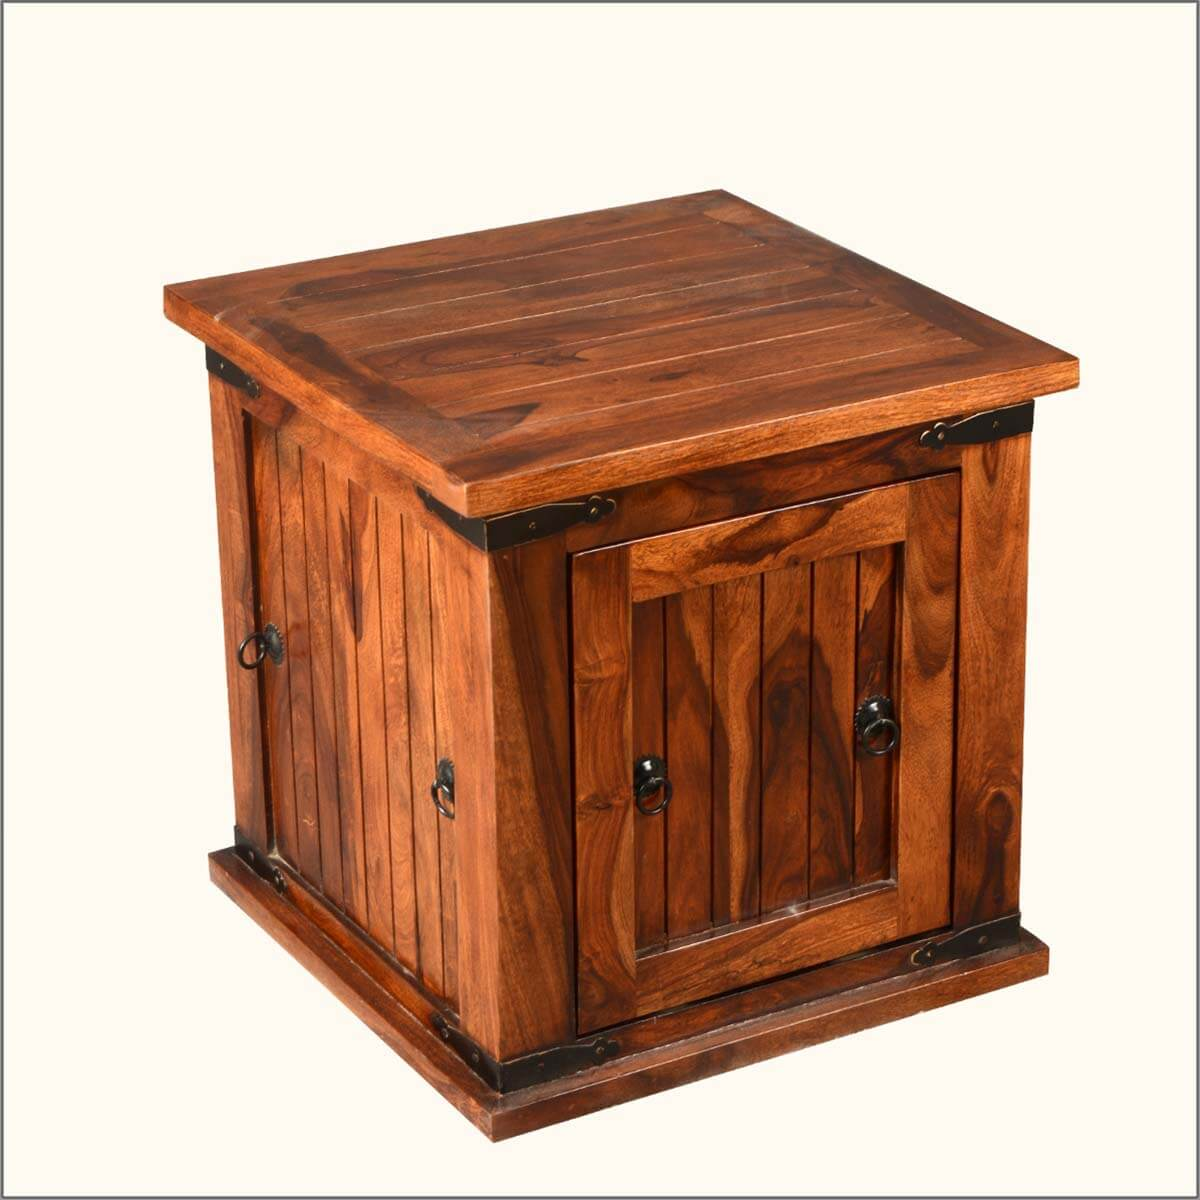 Solid wood square storage box trunk sofa side end table Sofa side table